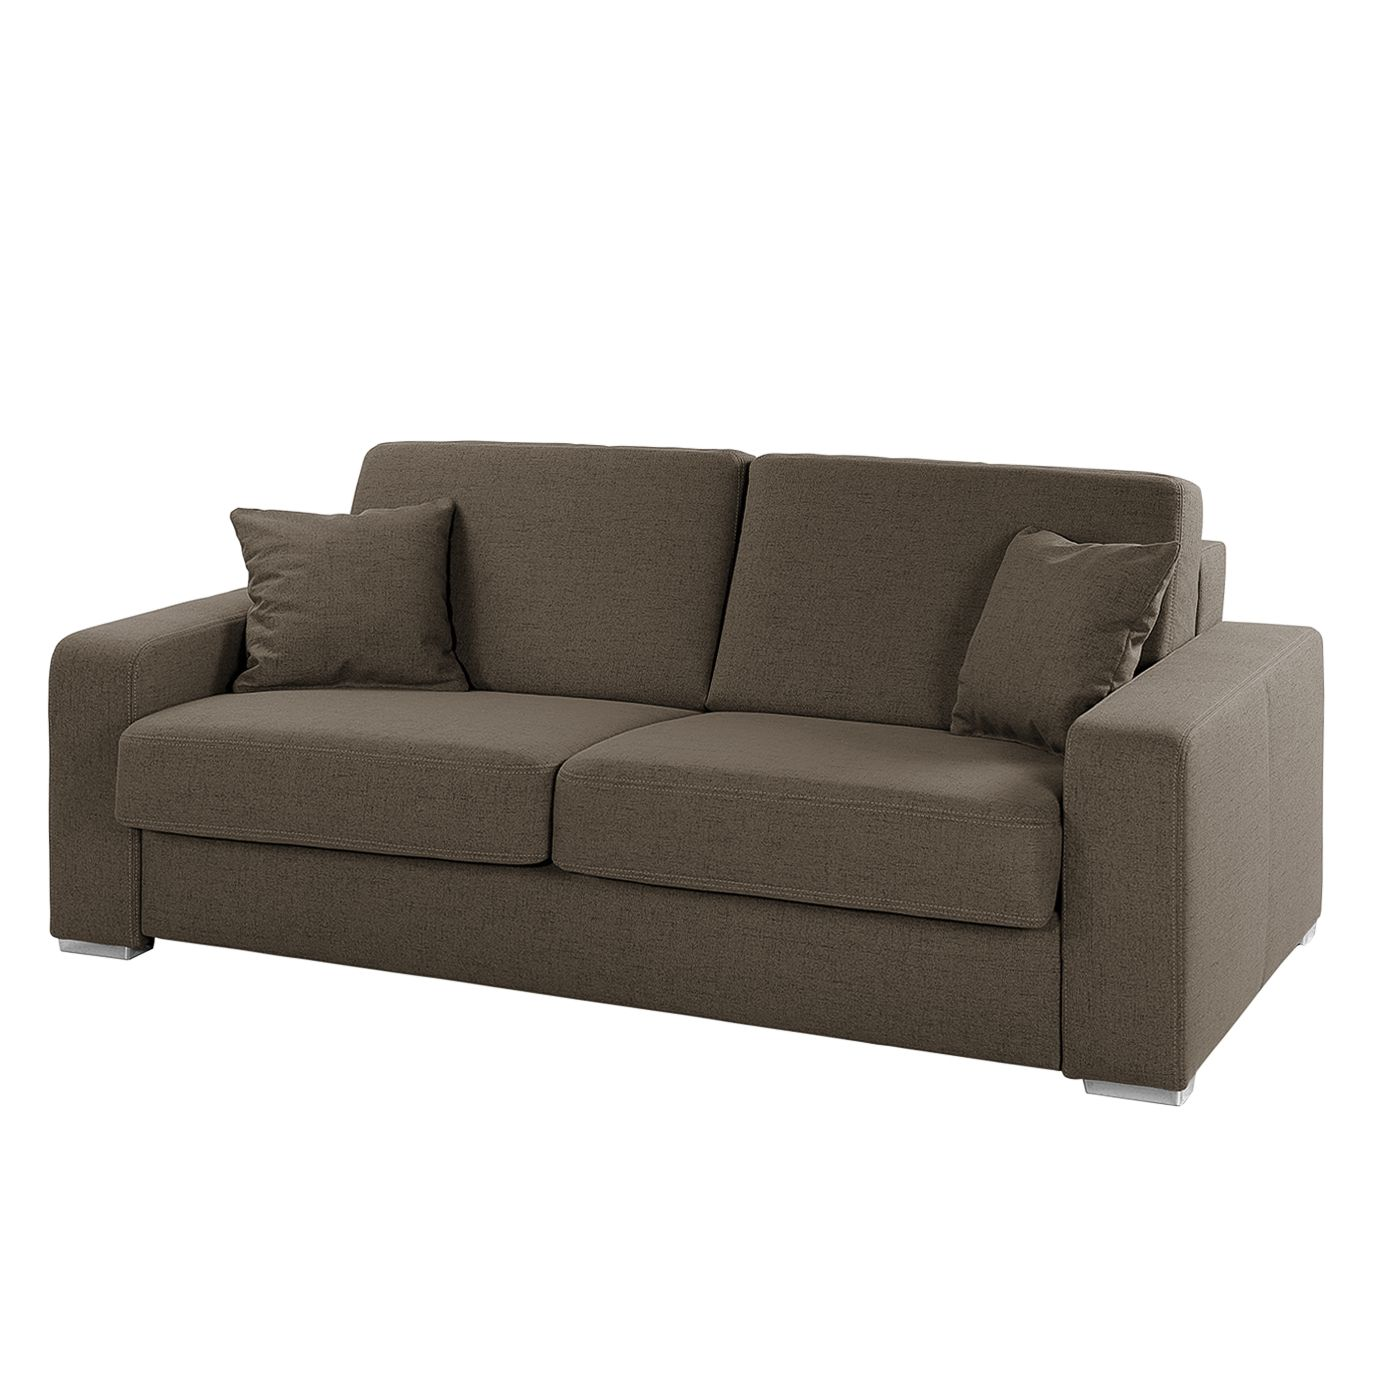 Canapé convertible Coro - Tissu - Marron, Home Design